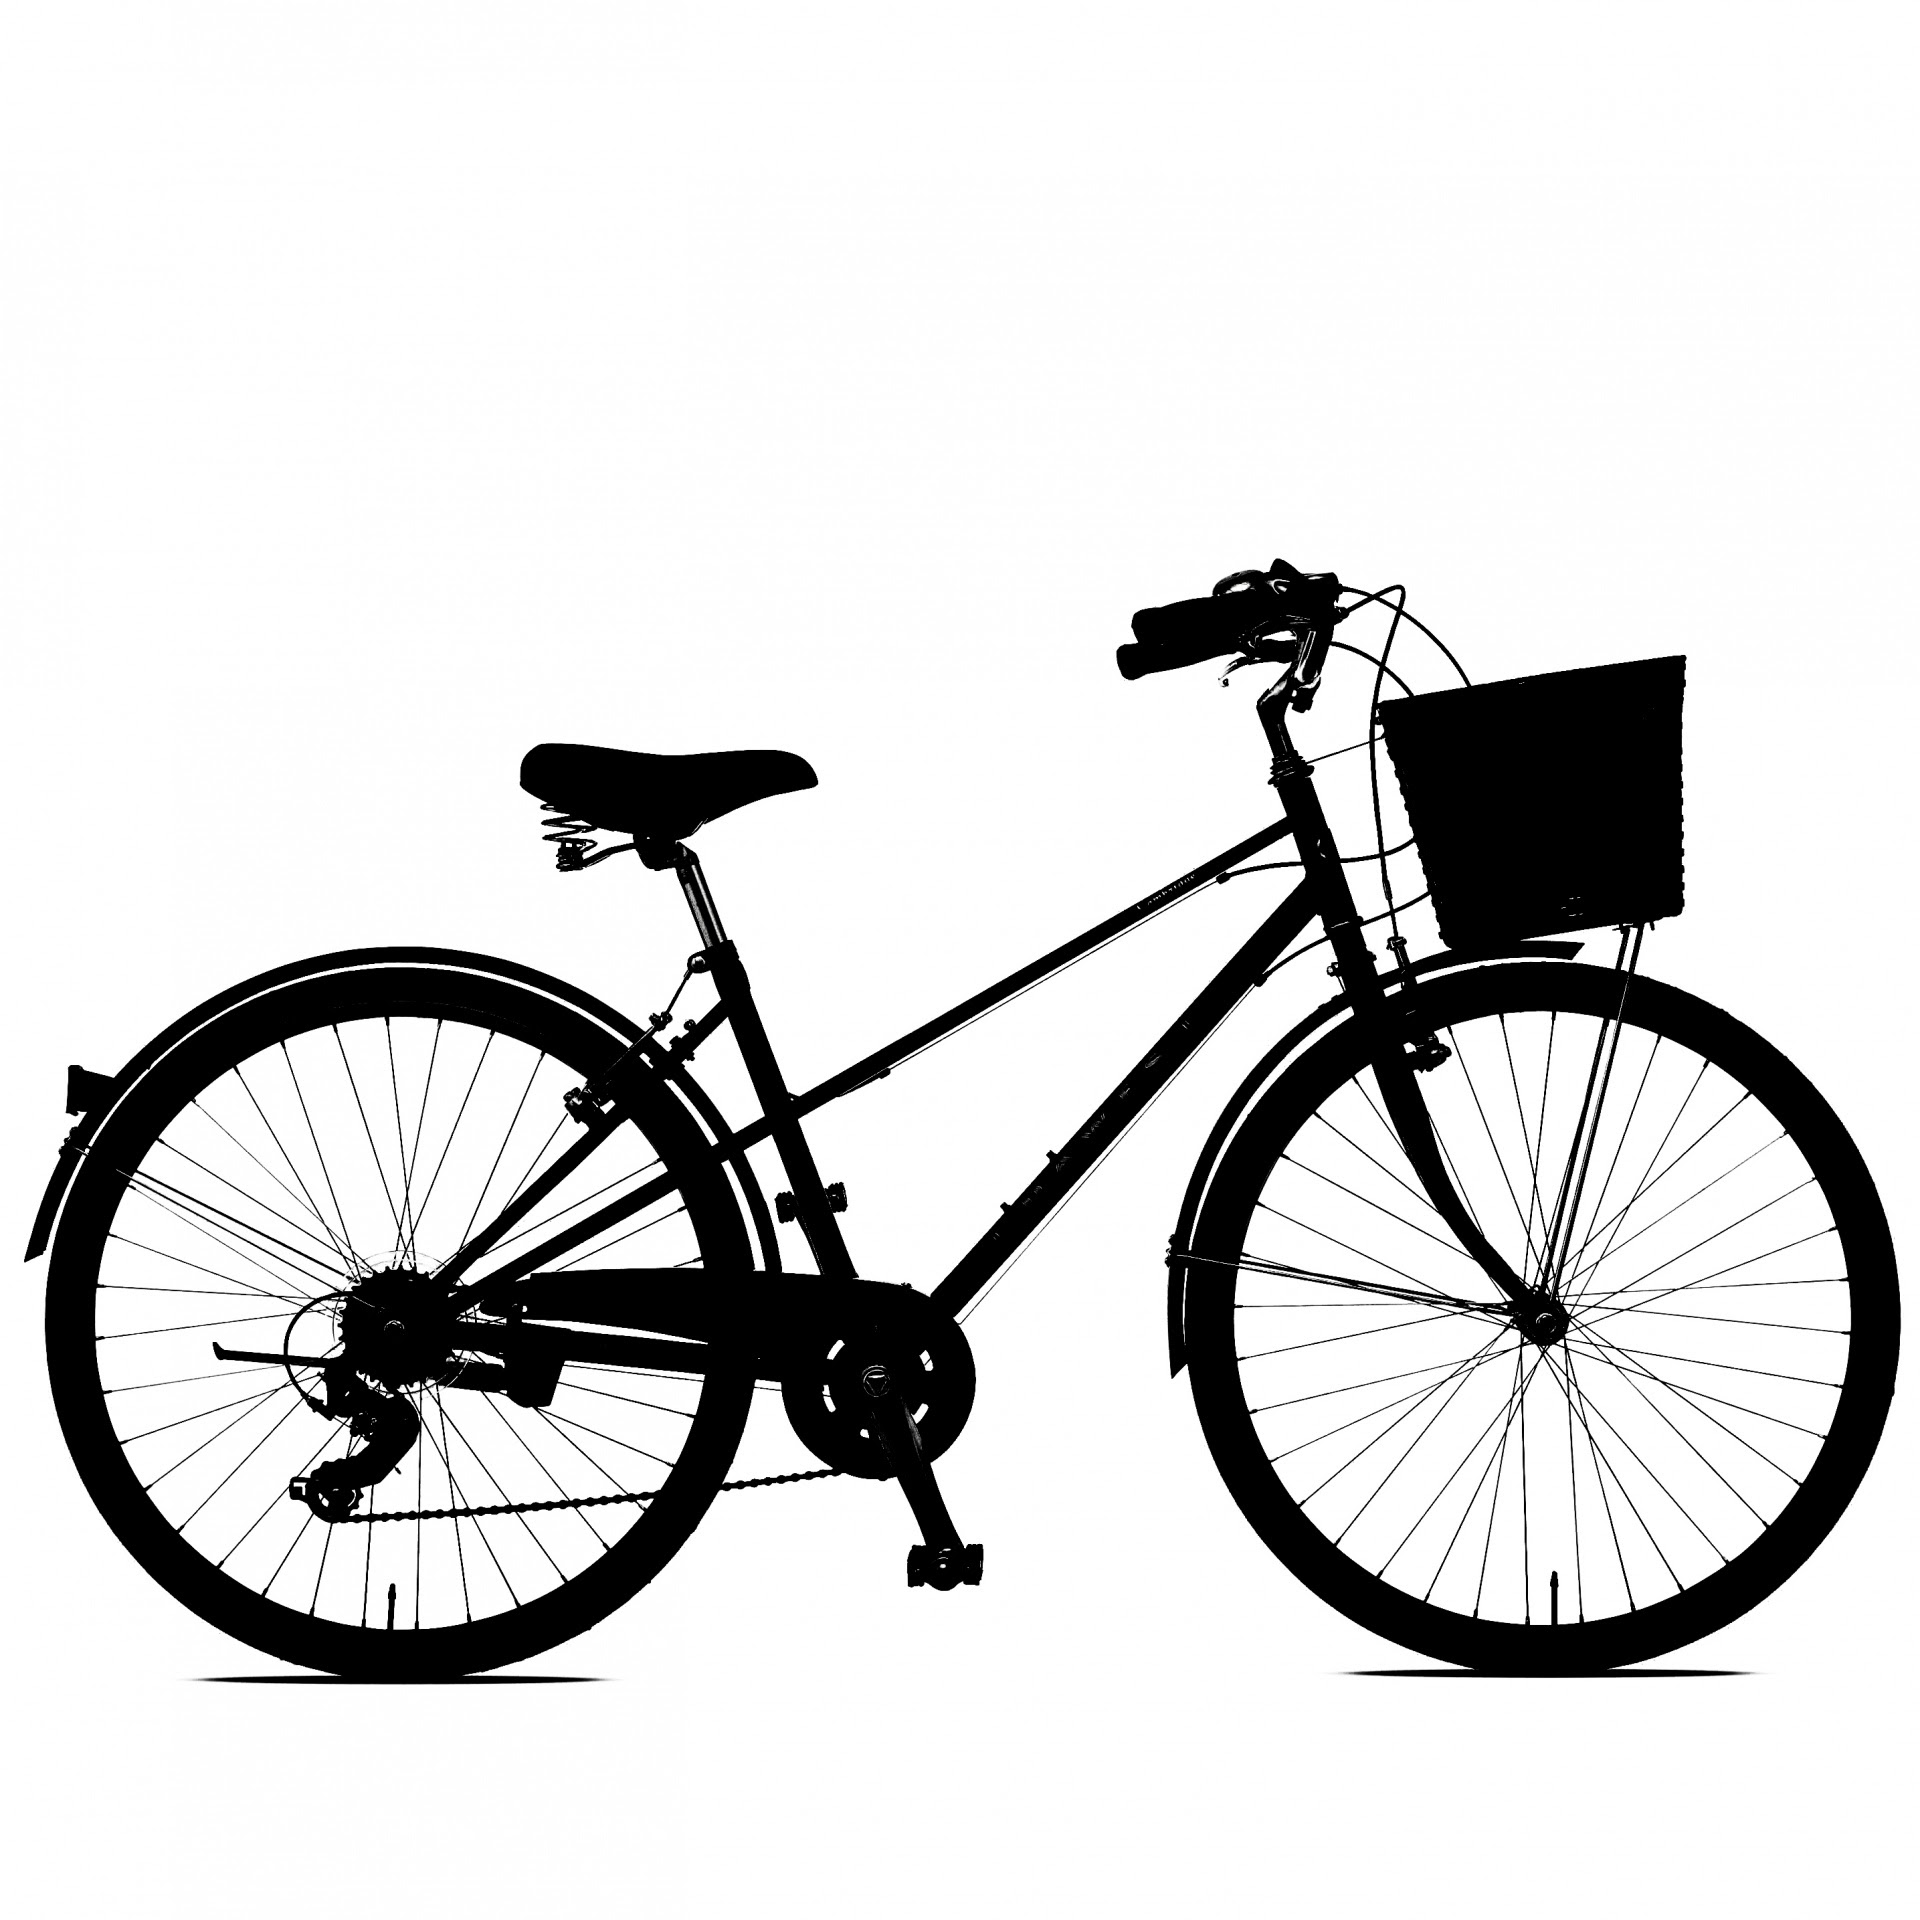 Bicycle Clipart Free Stock Photo - Public Domain Pictures